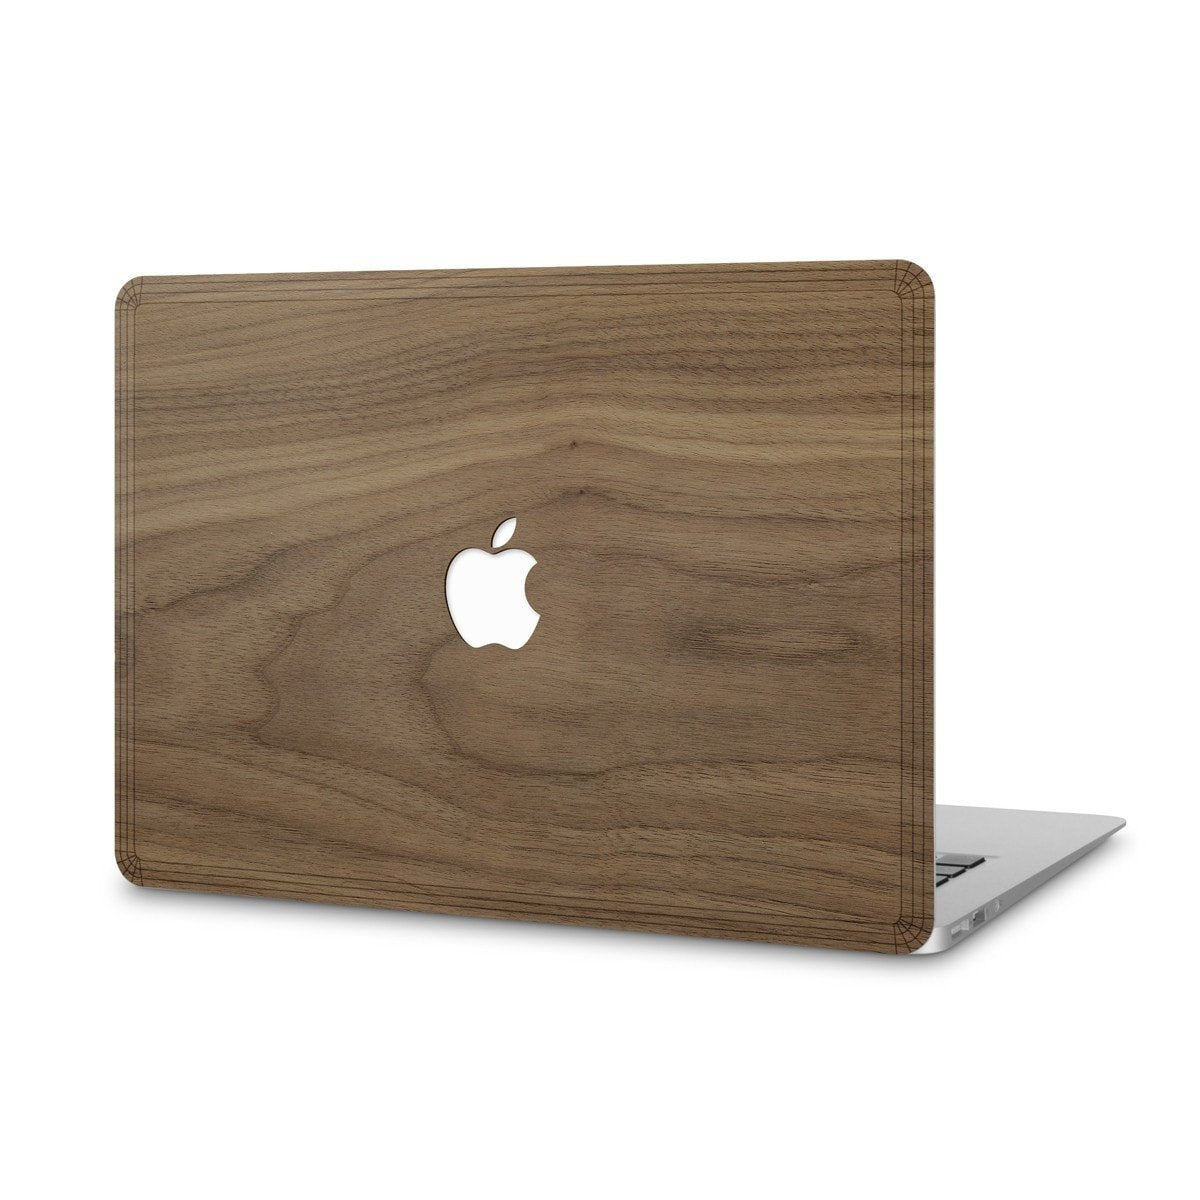 detailing 413b8 ff50f Walnut #WoodBack Skin MacBook Pro 15